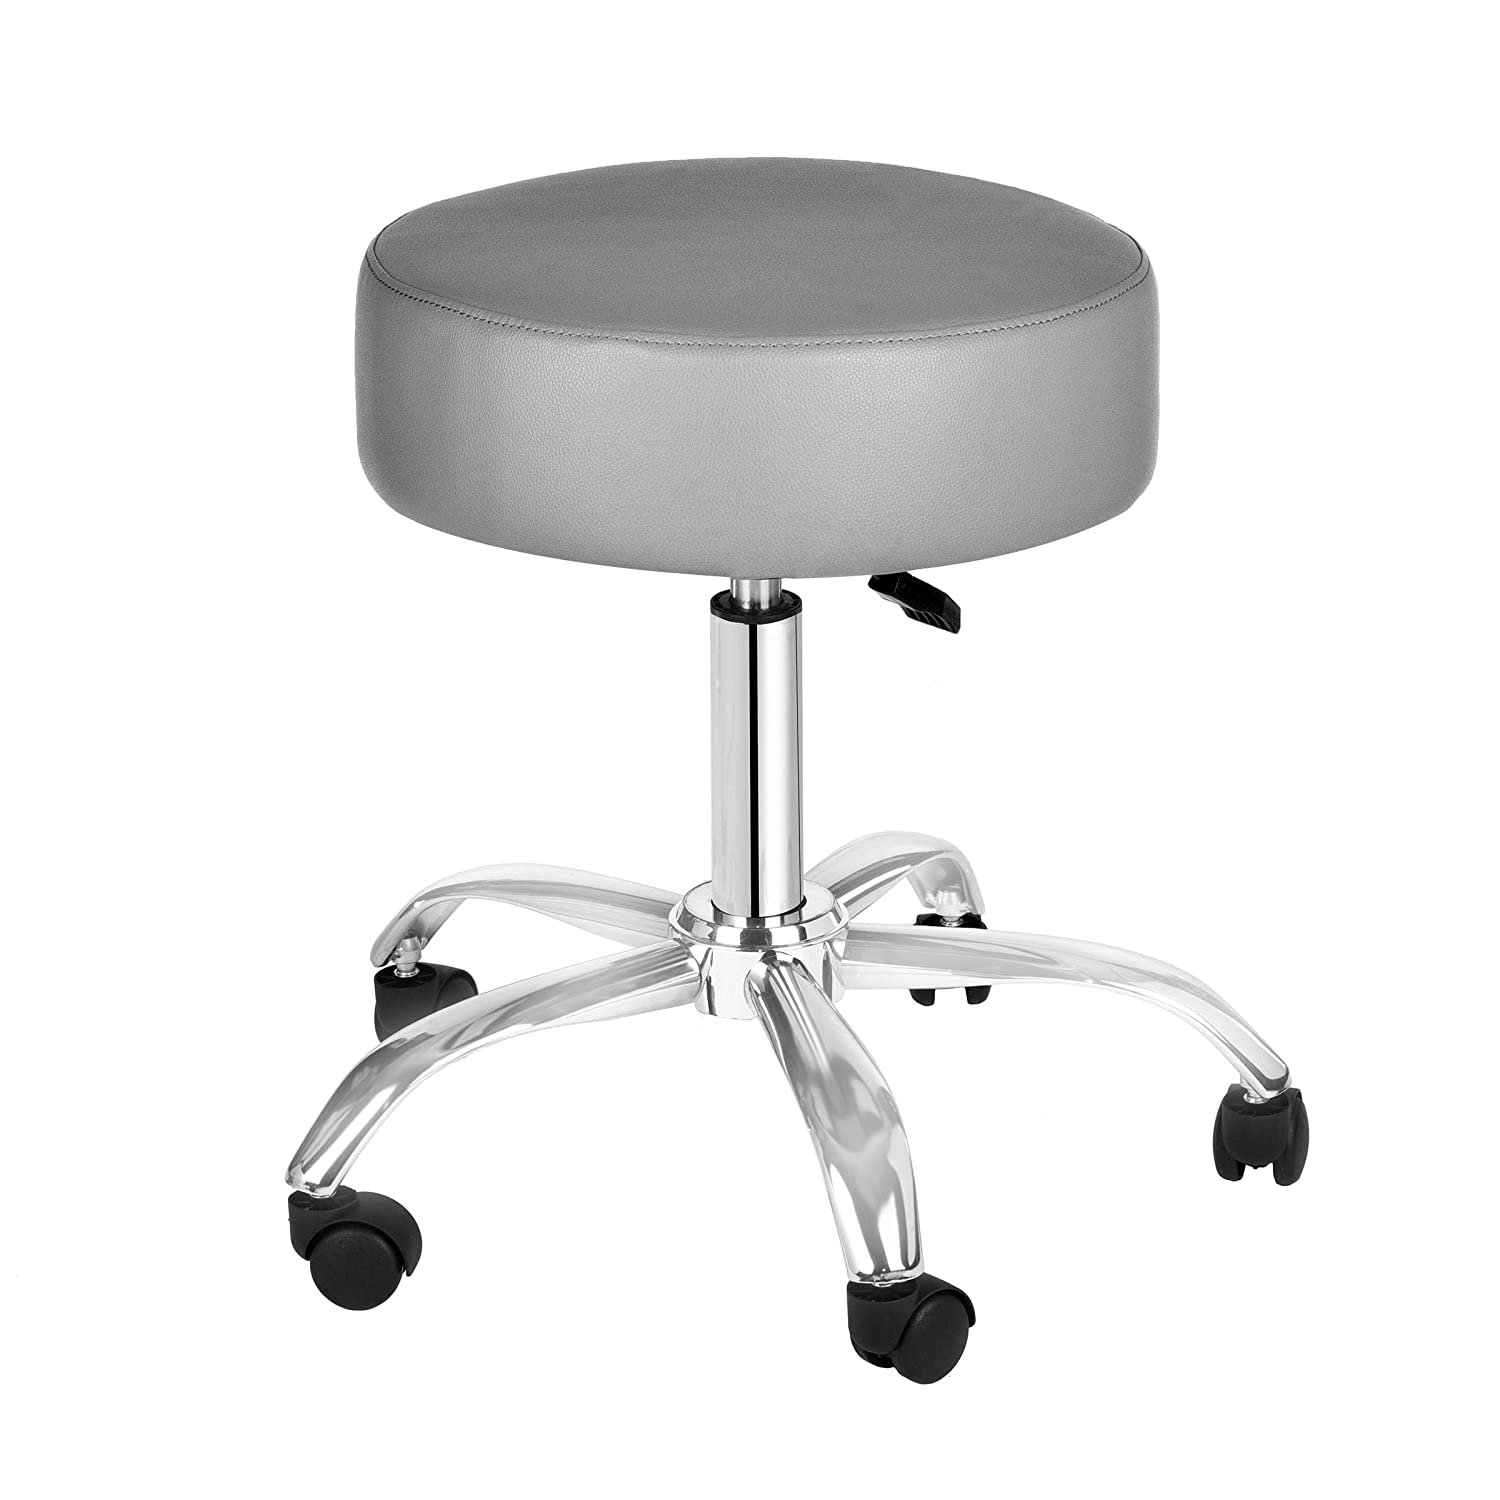 AdirMed Lux Height-Adjustment Stool – Pneumatic Rolling Swivel Stool – Versatile Mobility Elevation for Spa Salon Home Office Use Grey